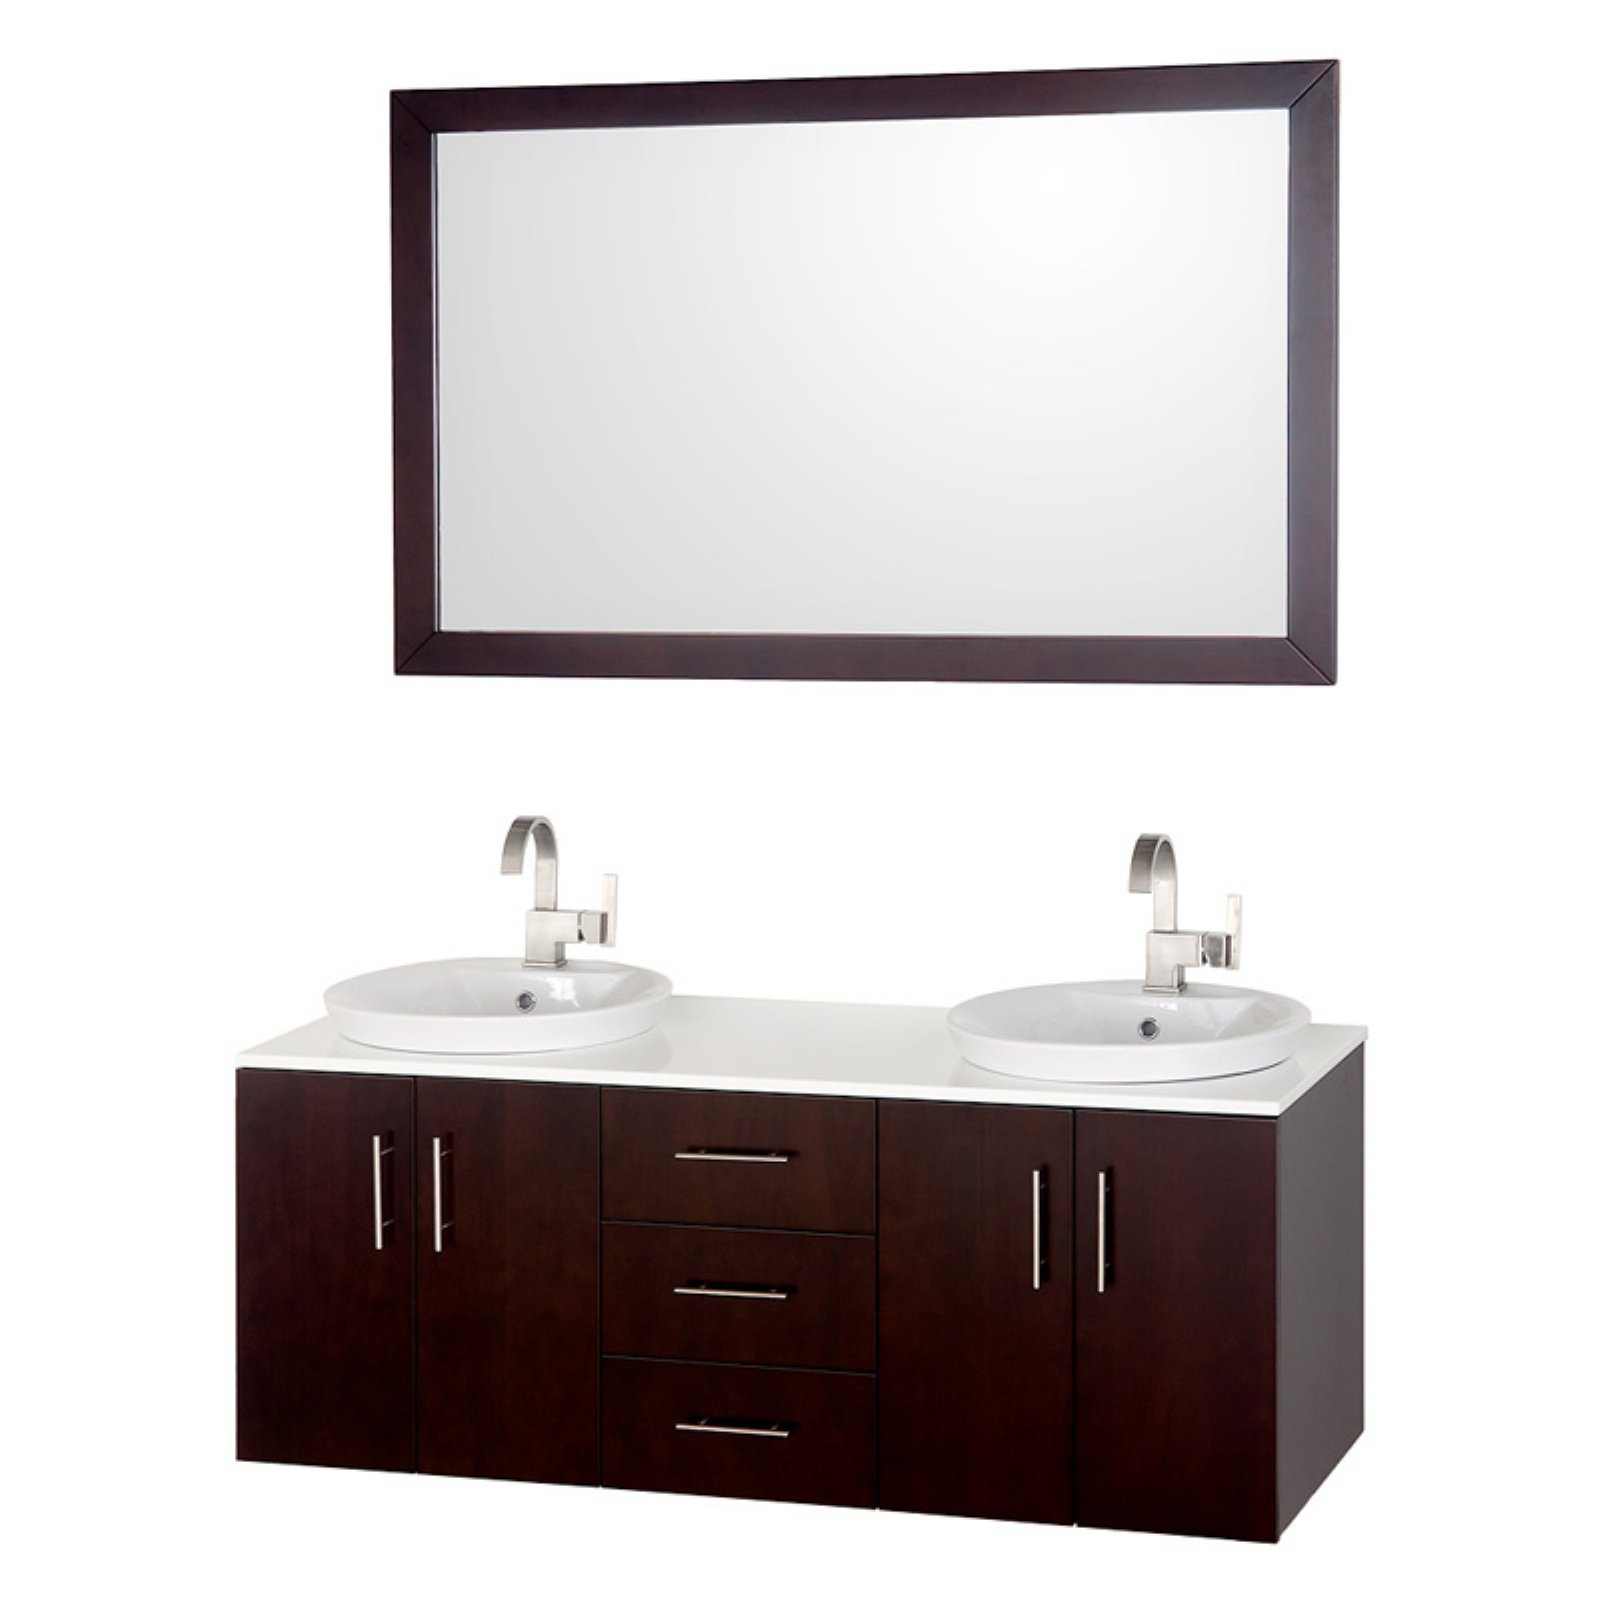 wyndham collection arrano 55 inch double bathroom vanity in espresso white man made stone countertop white porcelain semi recessed sinks and 52